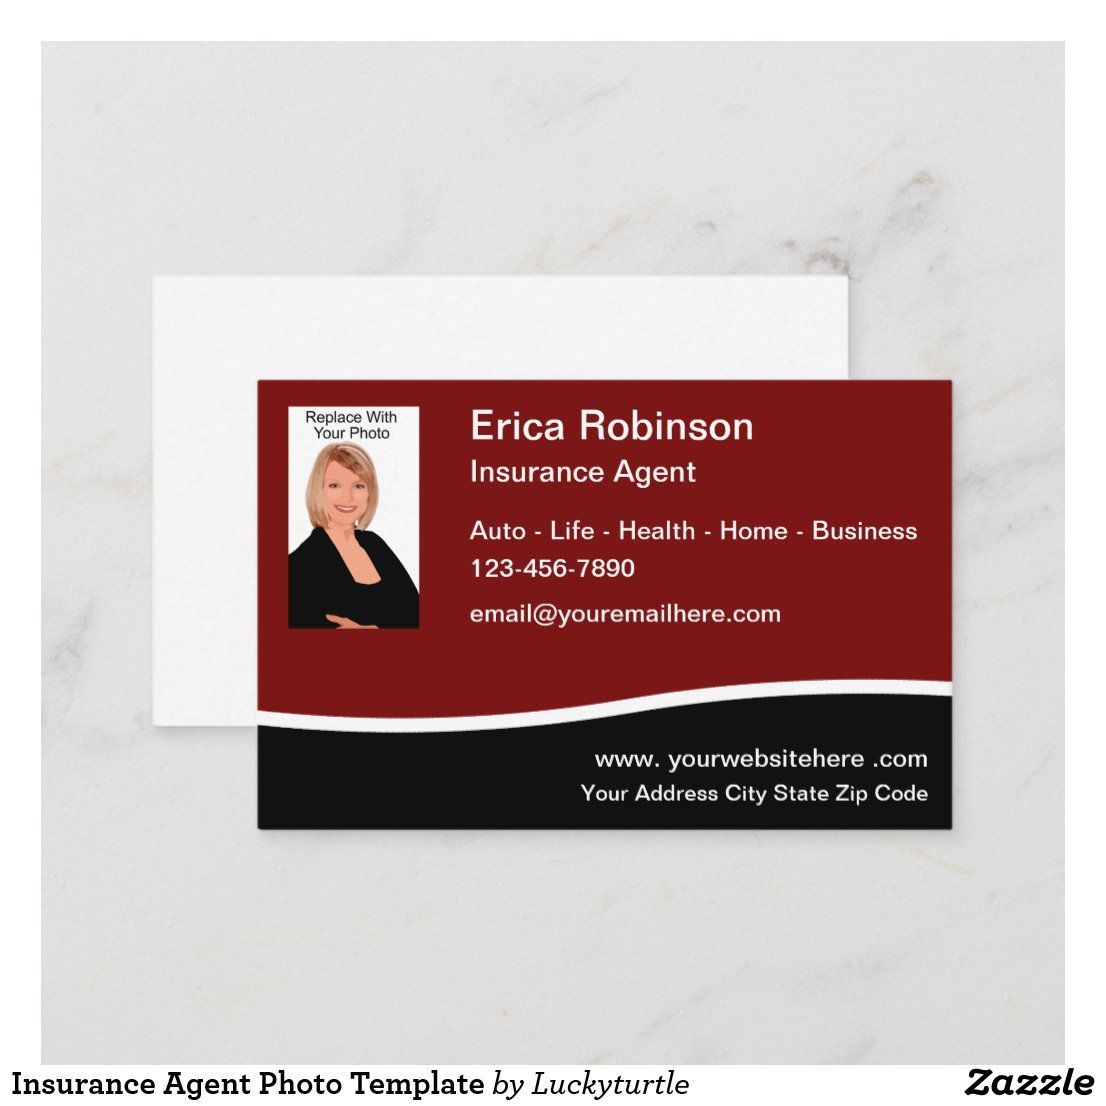 Insurance Agent Photo Template Business Card In 2020 Insurance